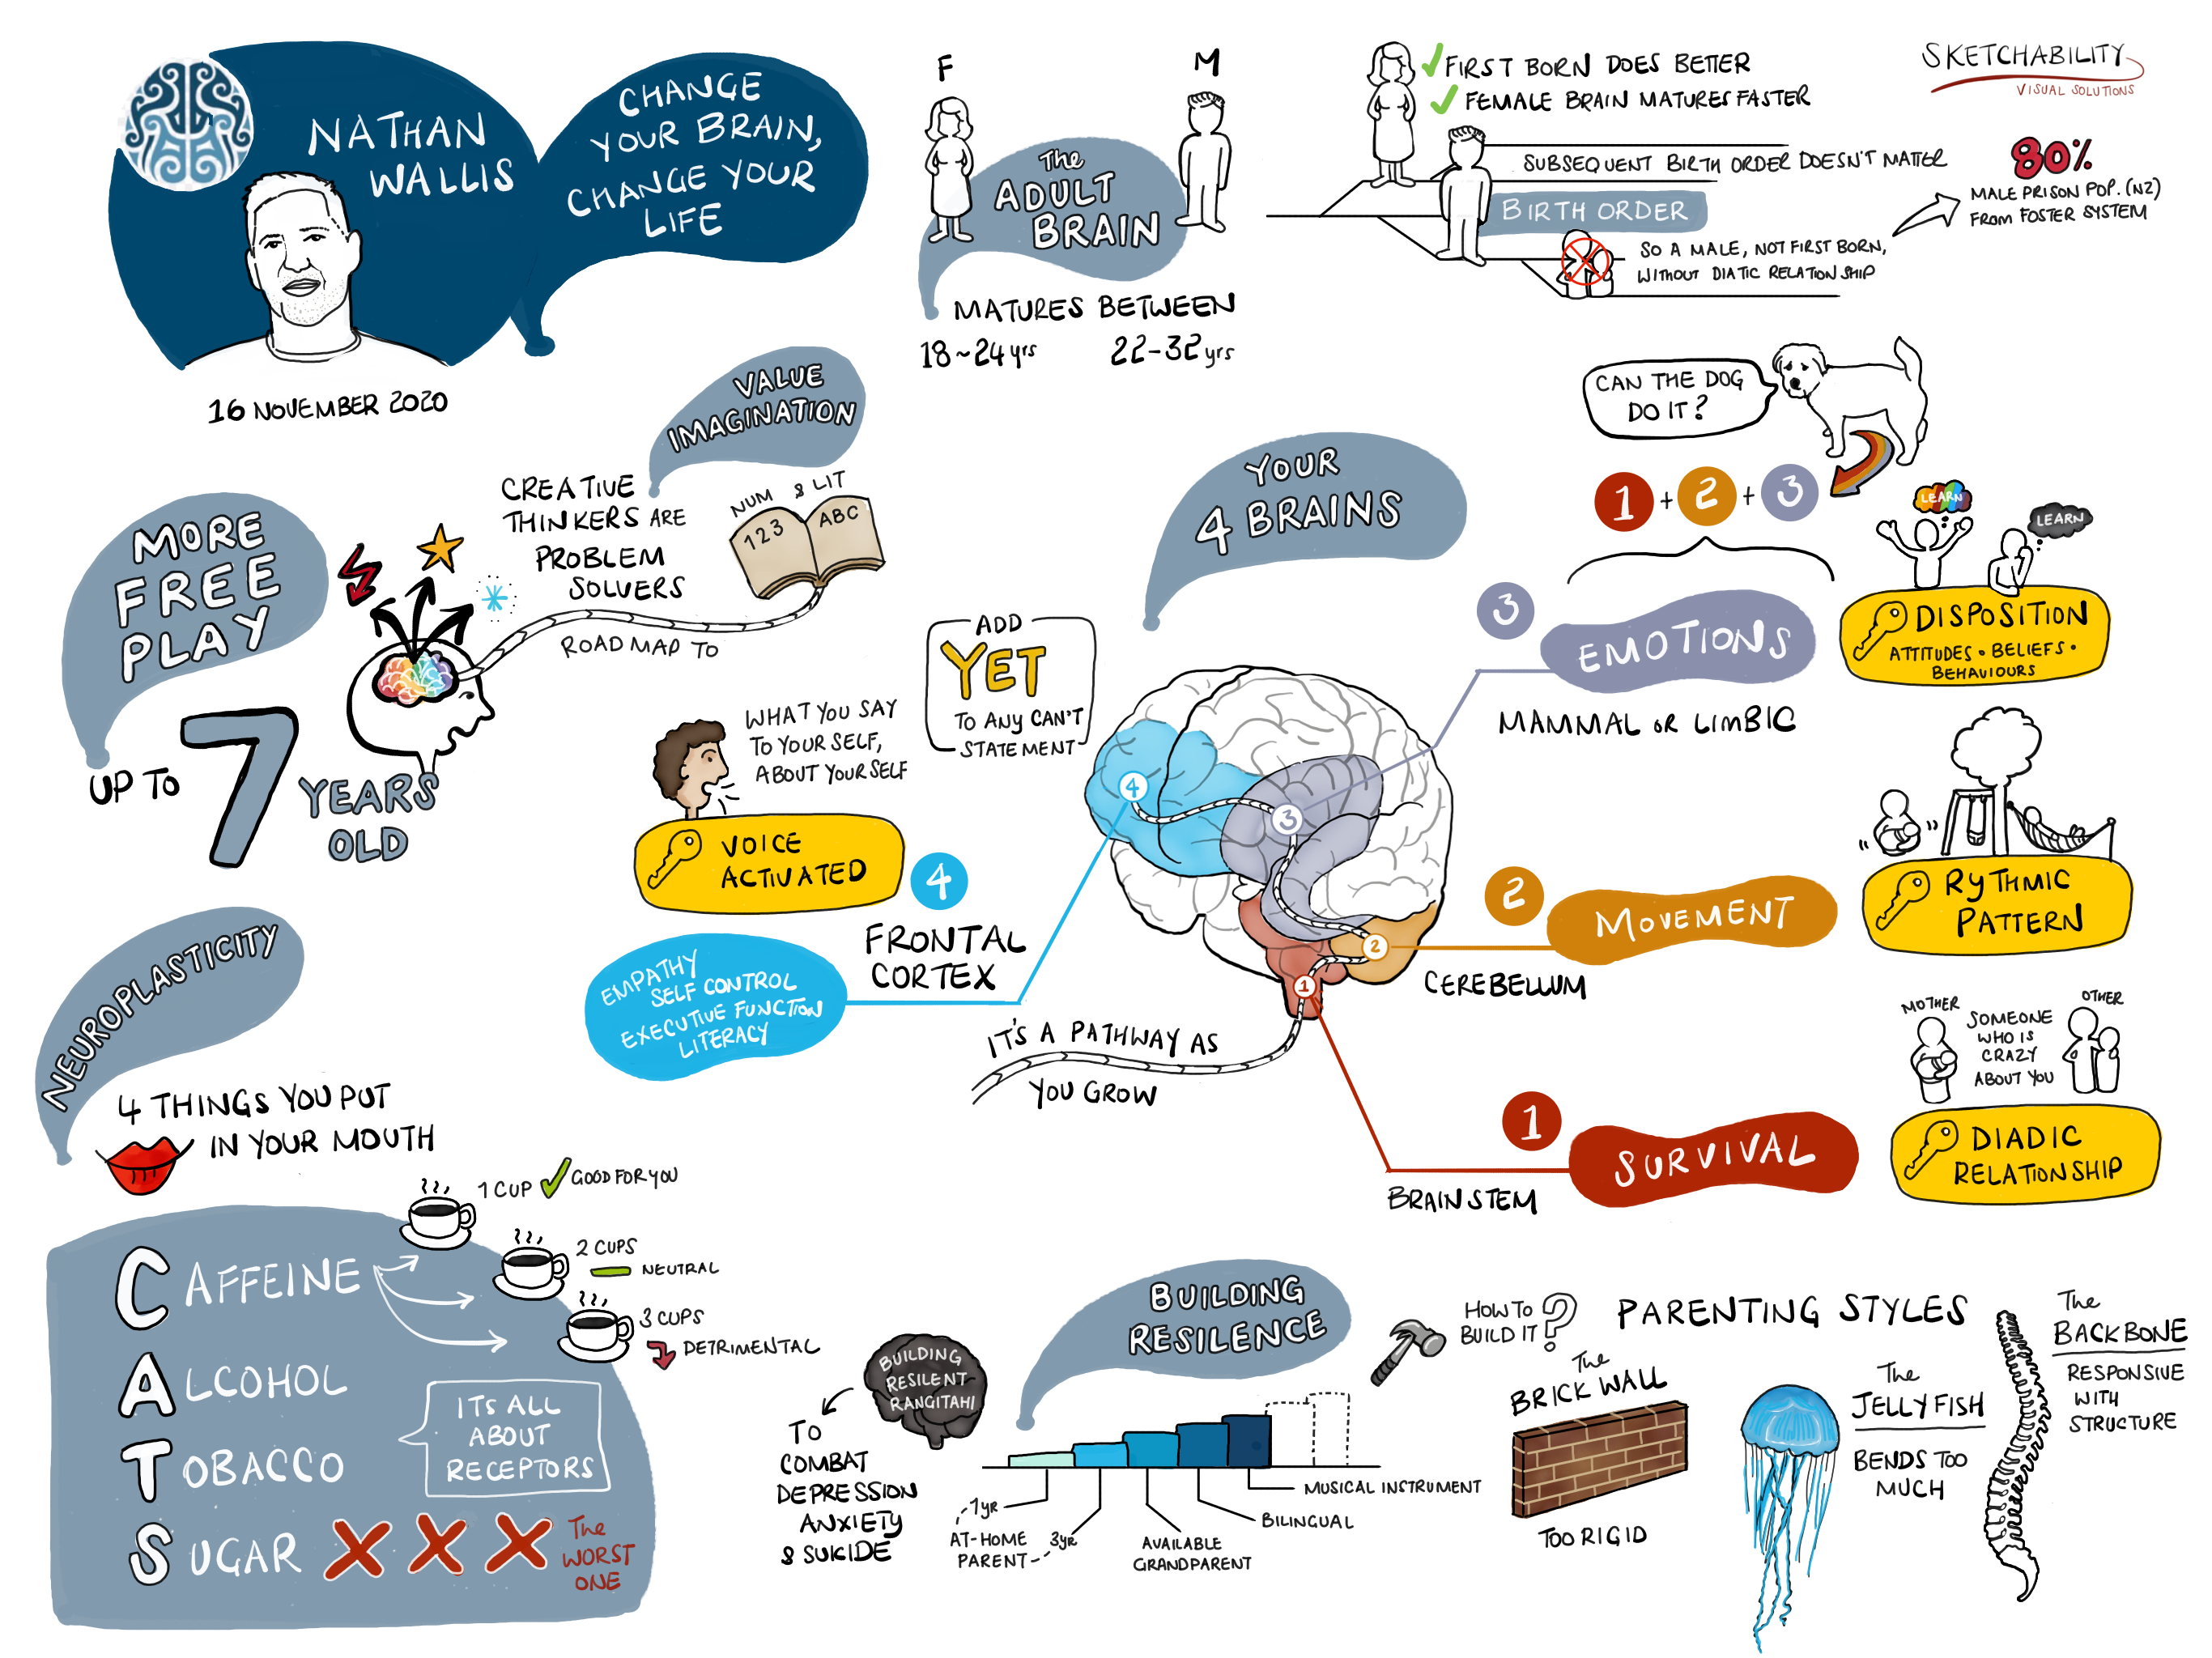 Visual sketchnote from a workshop with Nathan Wallis called 'Change your brain, change your life.'